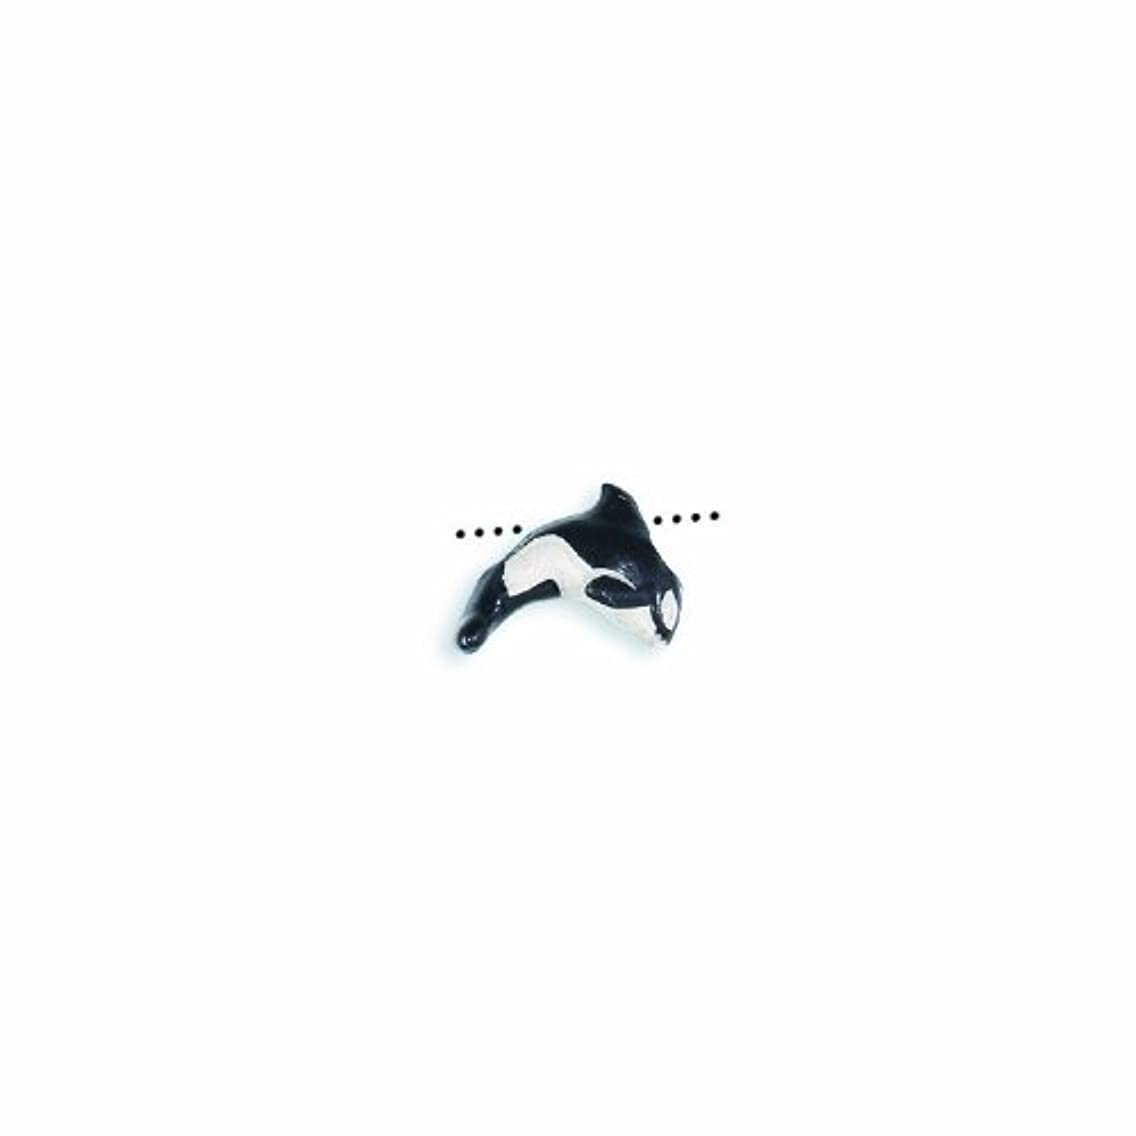 Peruvian Shipwreck Hand Crafted Ceramic Orca Whale Tiny Beads, 10 by 14mm, Black, 4 Per Pack